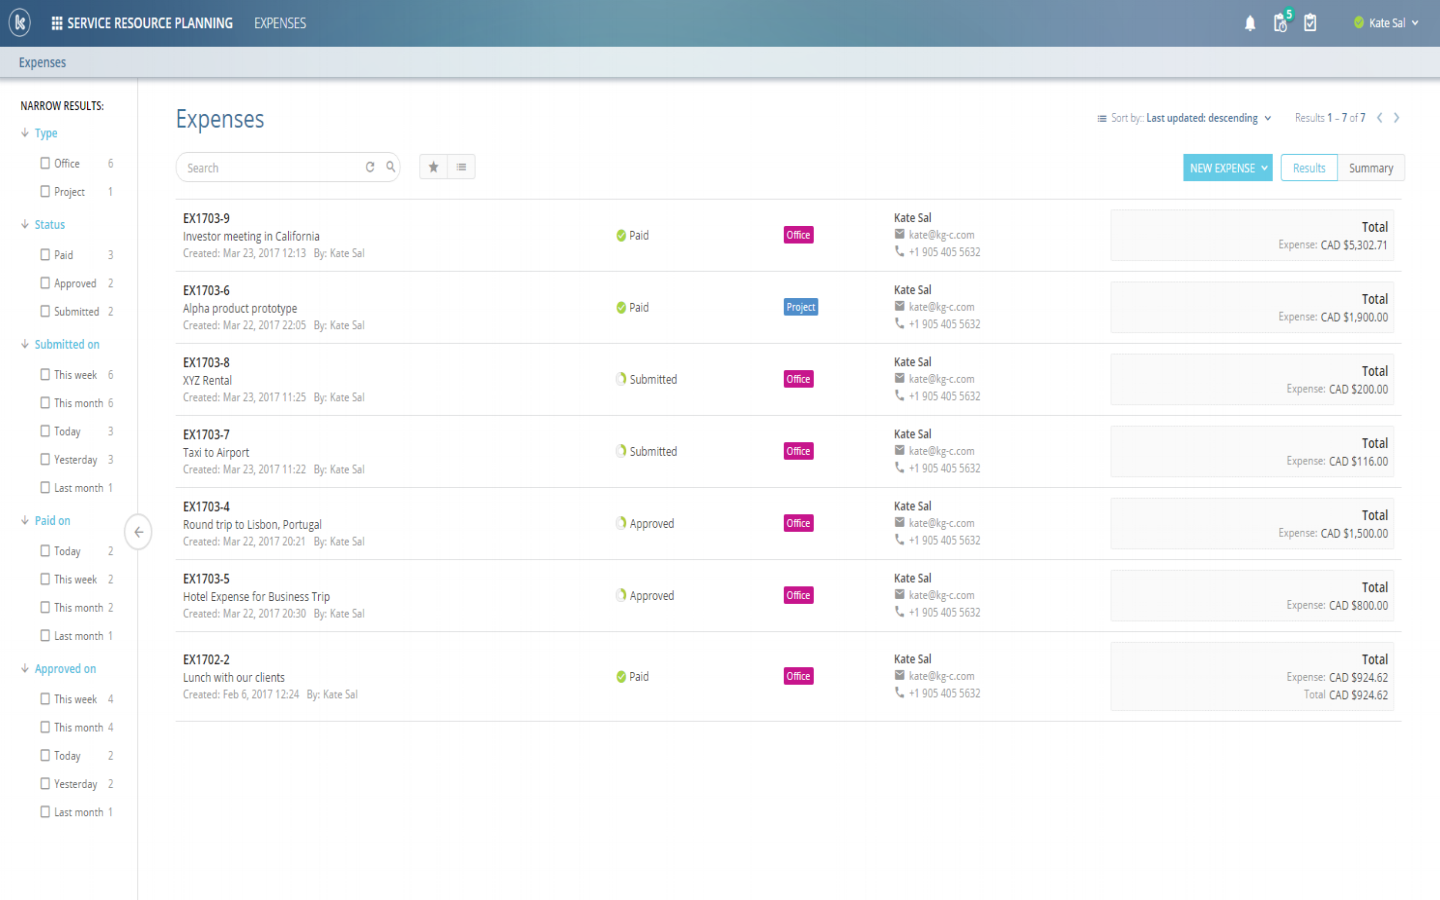 Kloudville allows users to track and manage expenses